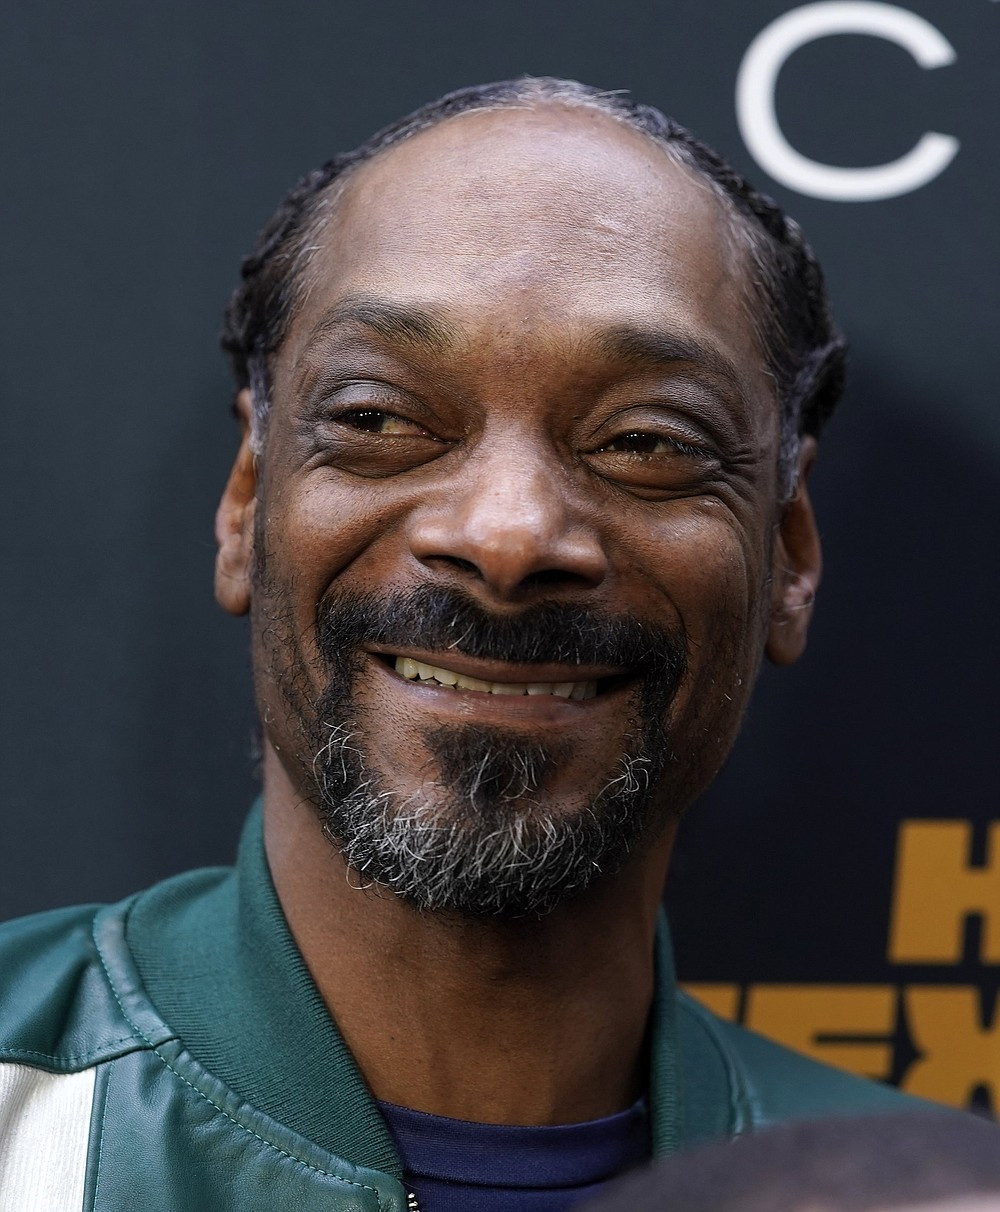 """Snoop Dogg, a cast member in the film """"The House Next Door: Meet The Blacks 2,"""" poses at the premiere of the film at Regal L.A. Live, Monday, June 7, 2021, in Los Angeles. (AP Photo/Chris Pizzello)"""